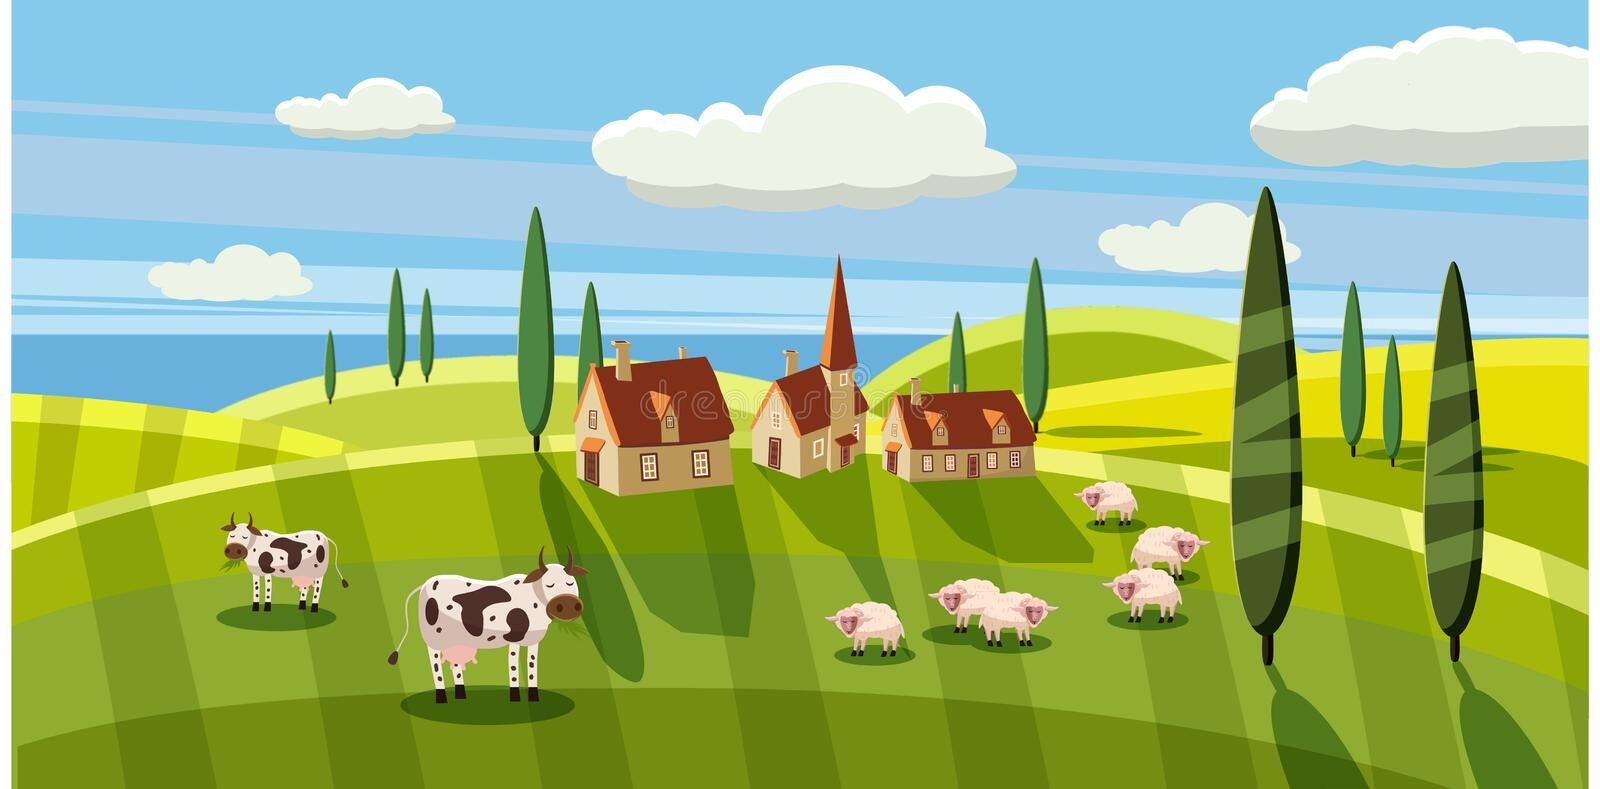 Lovely country rural landscape, cow sheep grazing, farm, flowers, pasture, Cartoon style, vector illustration royalty free illustration